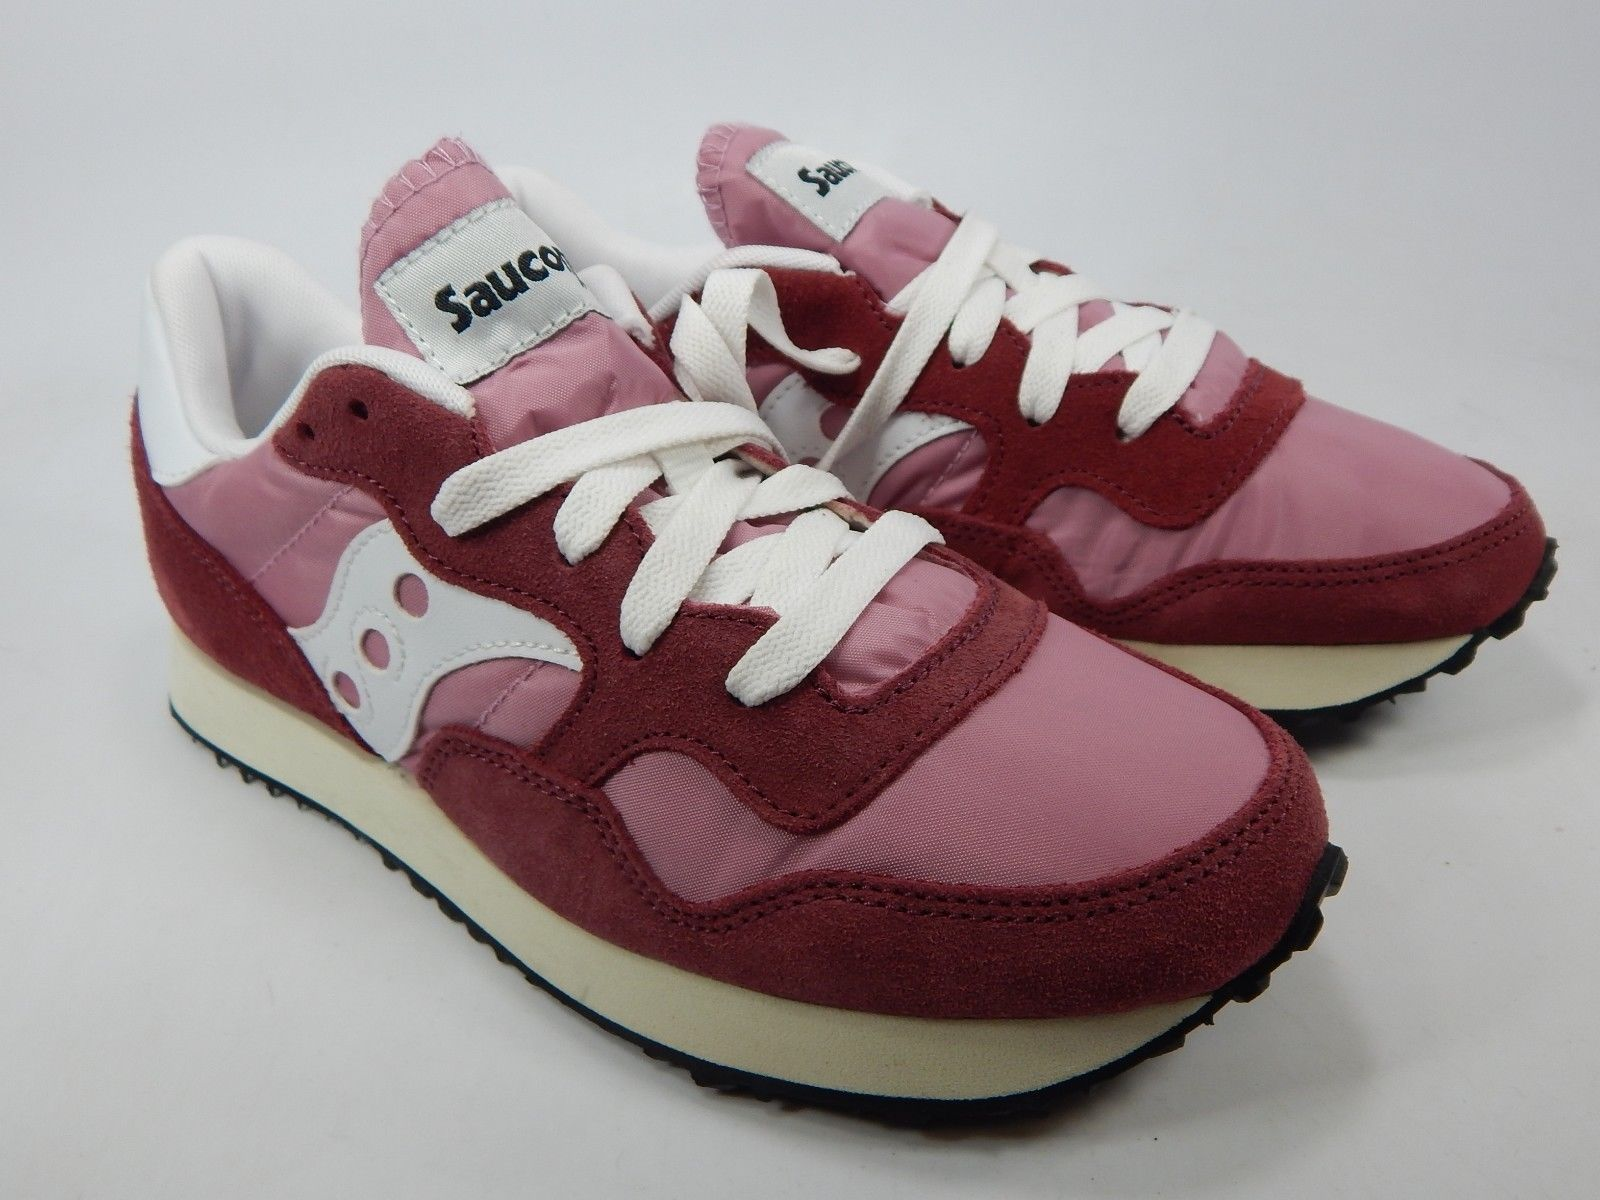 Saucony DXN Trainer Vintage SMU Original S60369-22 Women's Shoes Size 7 M EU 38